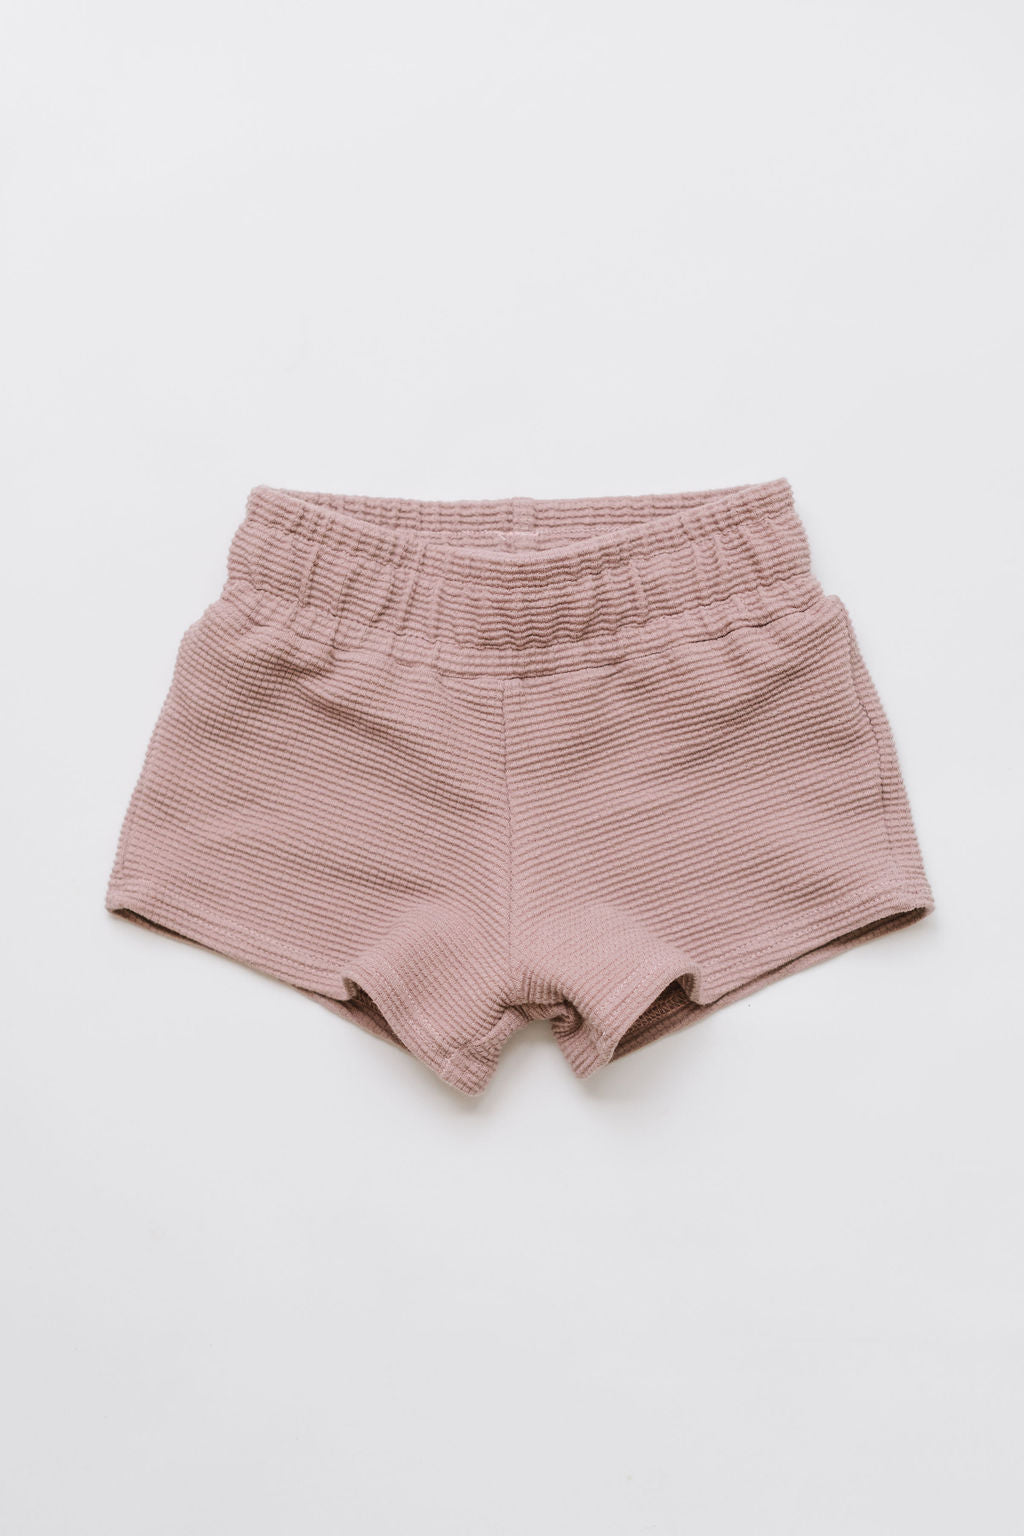 Play Shorts in Adobe Rose Organic Waffle Knit